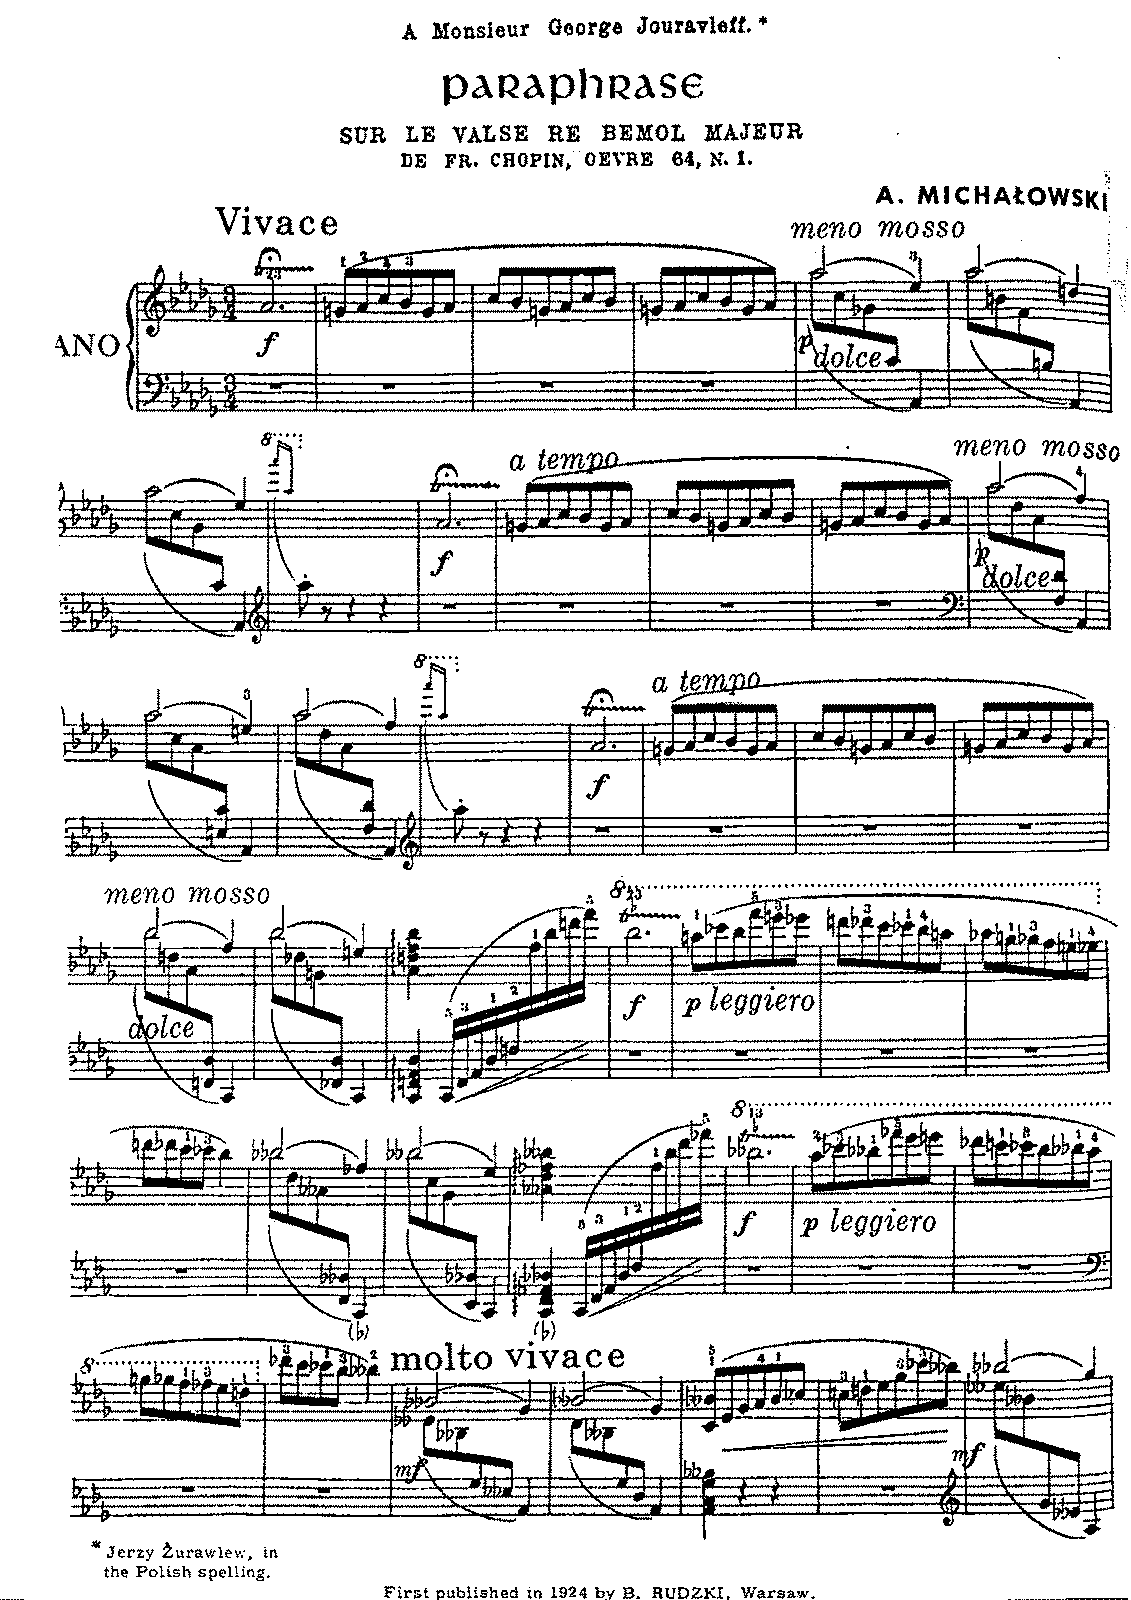 Chopin-Michalowski op64n1 Paraphrase On Minute Waltz.pdf